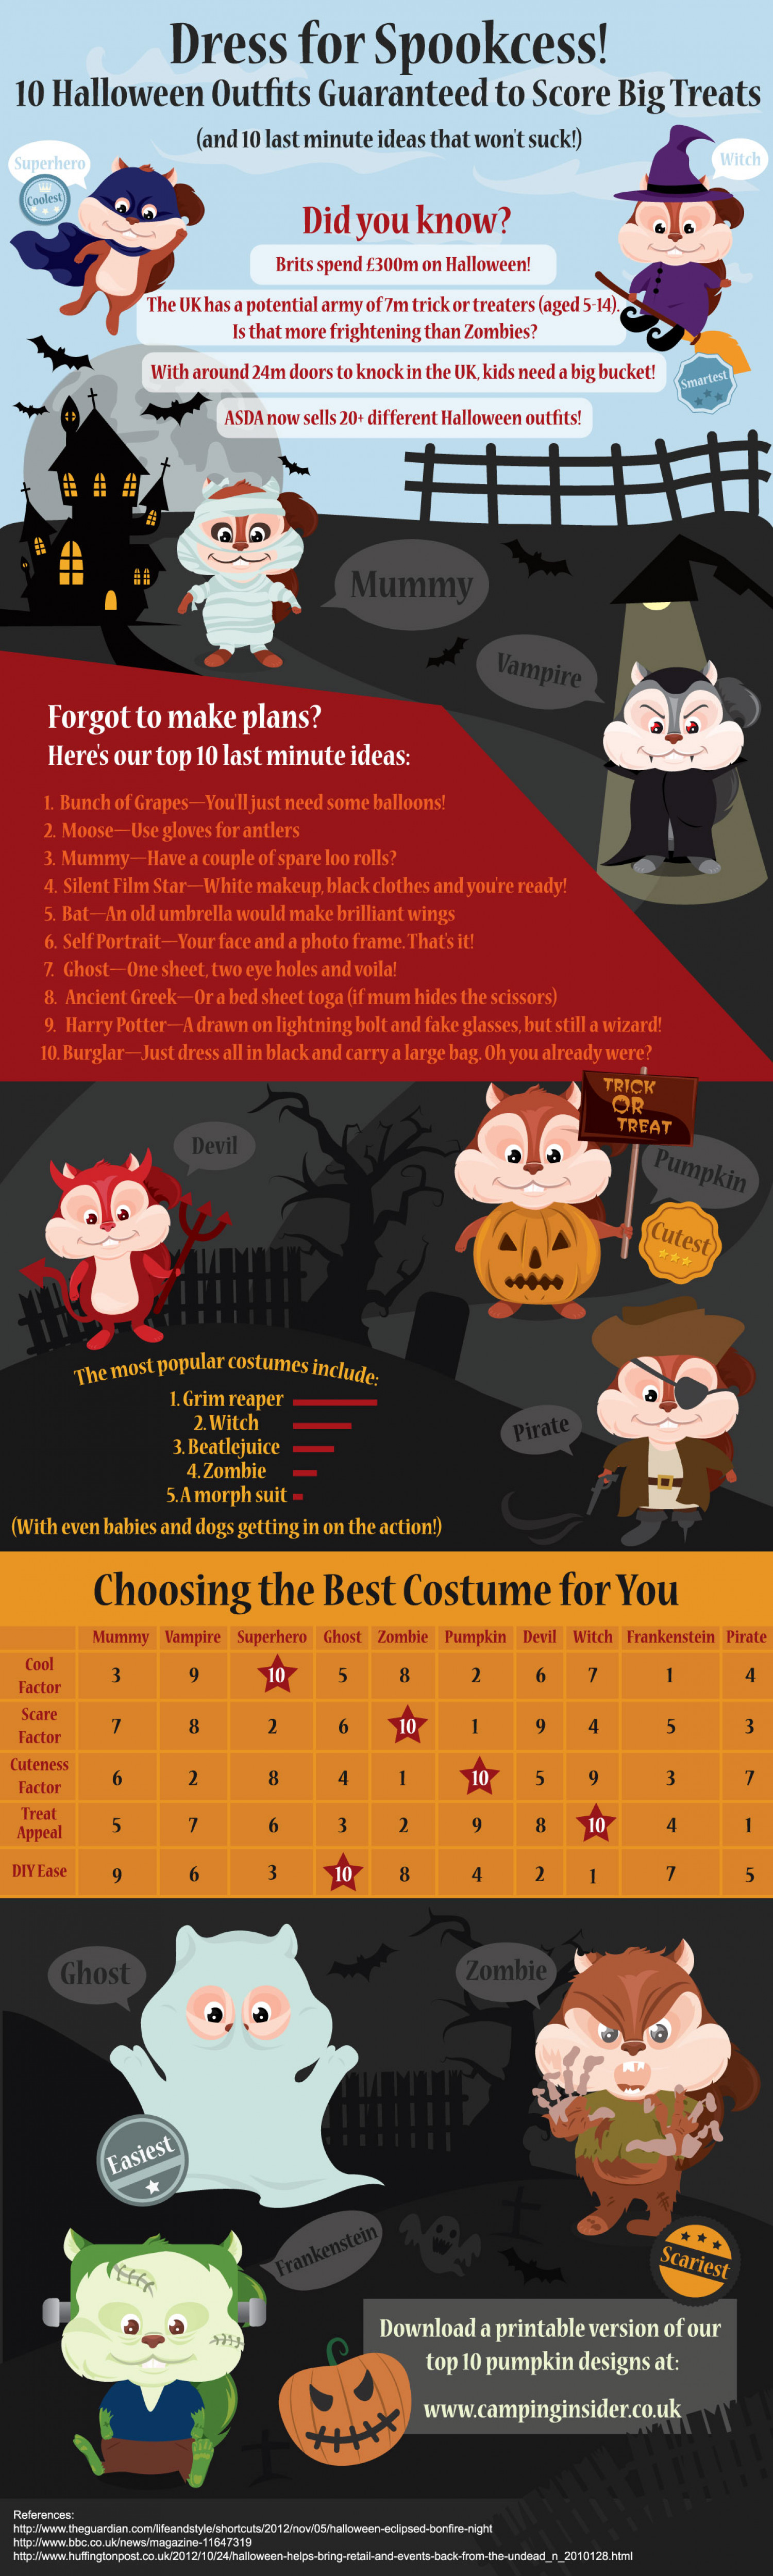 Dress for Spookcess! 10 Halloween Outfits Guaranteed to Score Big Treats Infographic